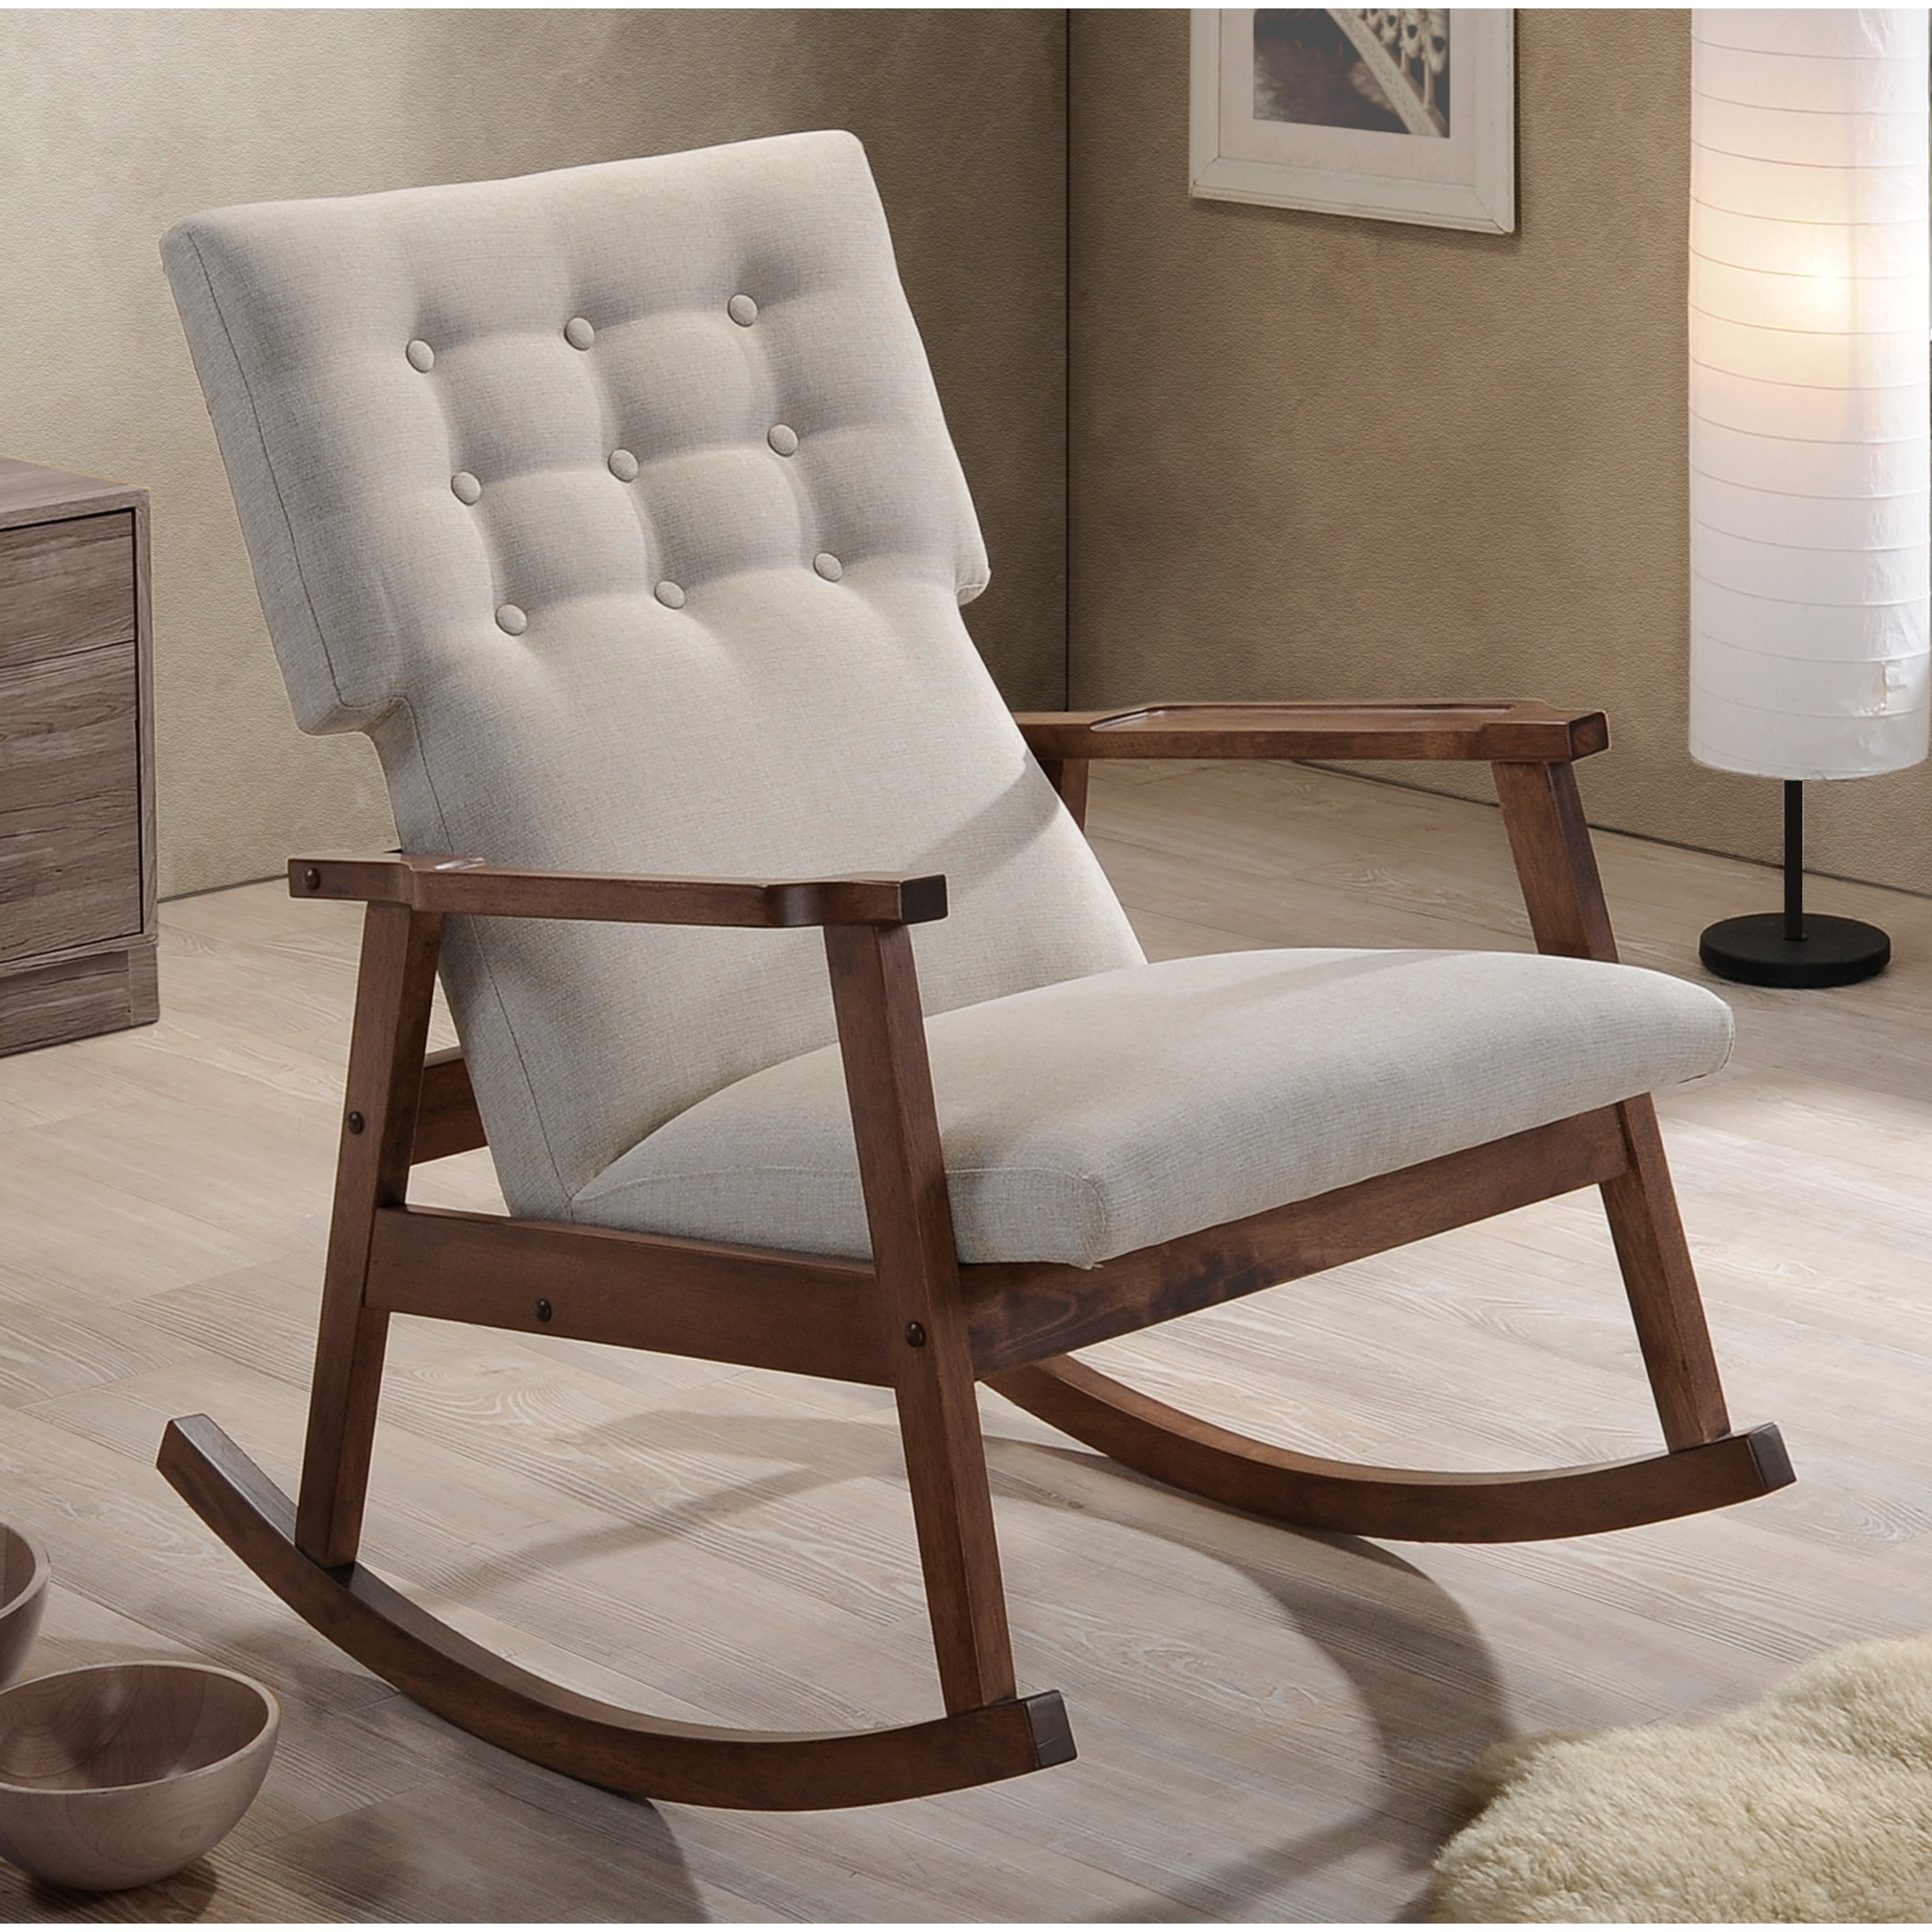 Best And Newest High Back Rocking Chairs Within High Back Rocking Chair – Modern Chairs Quality Interior  (View 2 of 15)